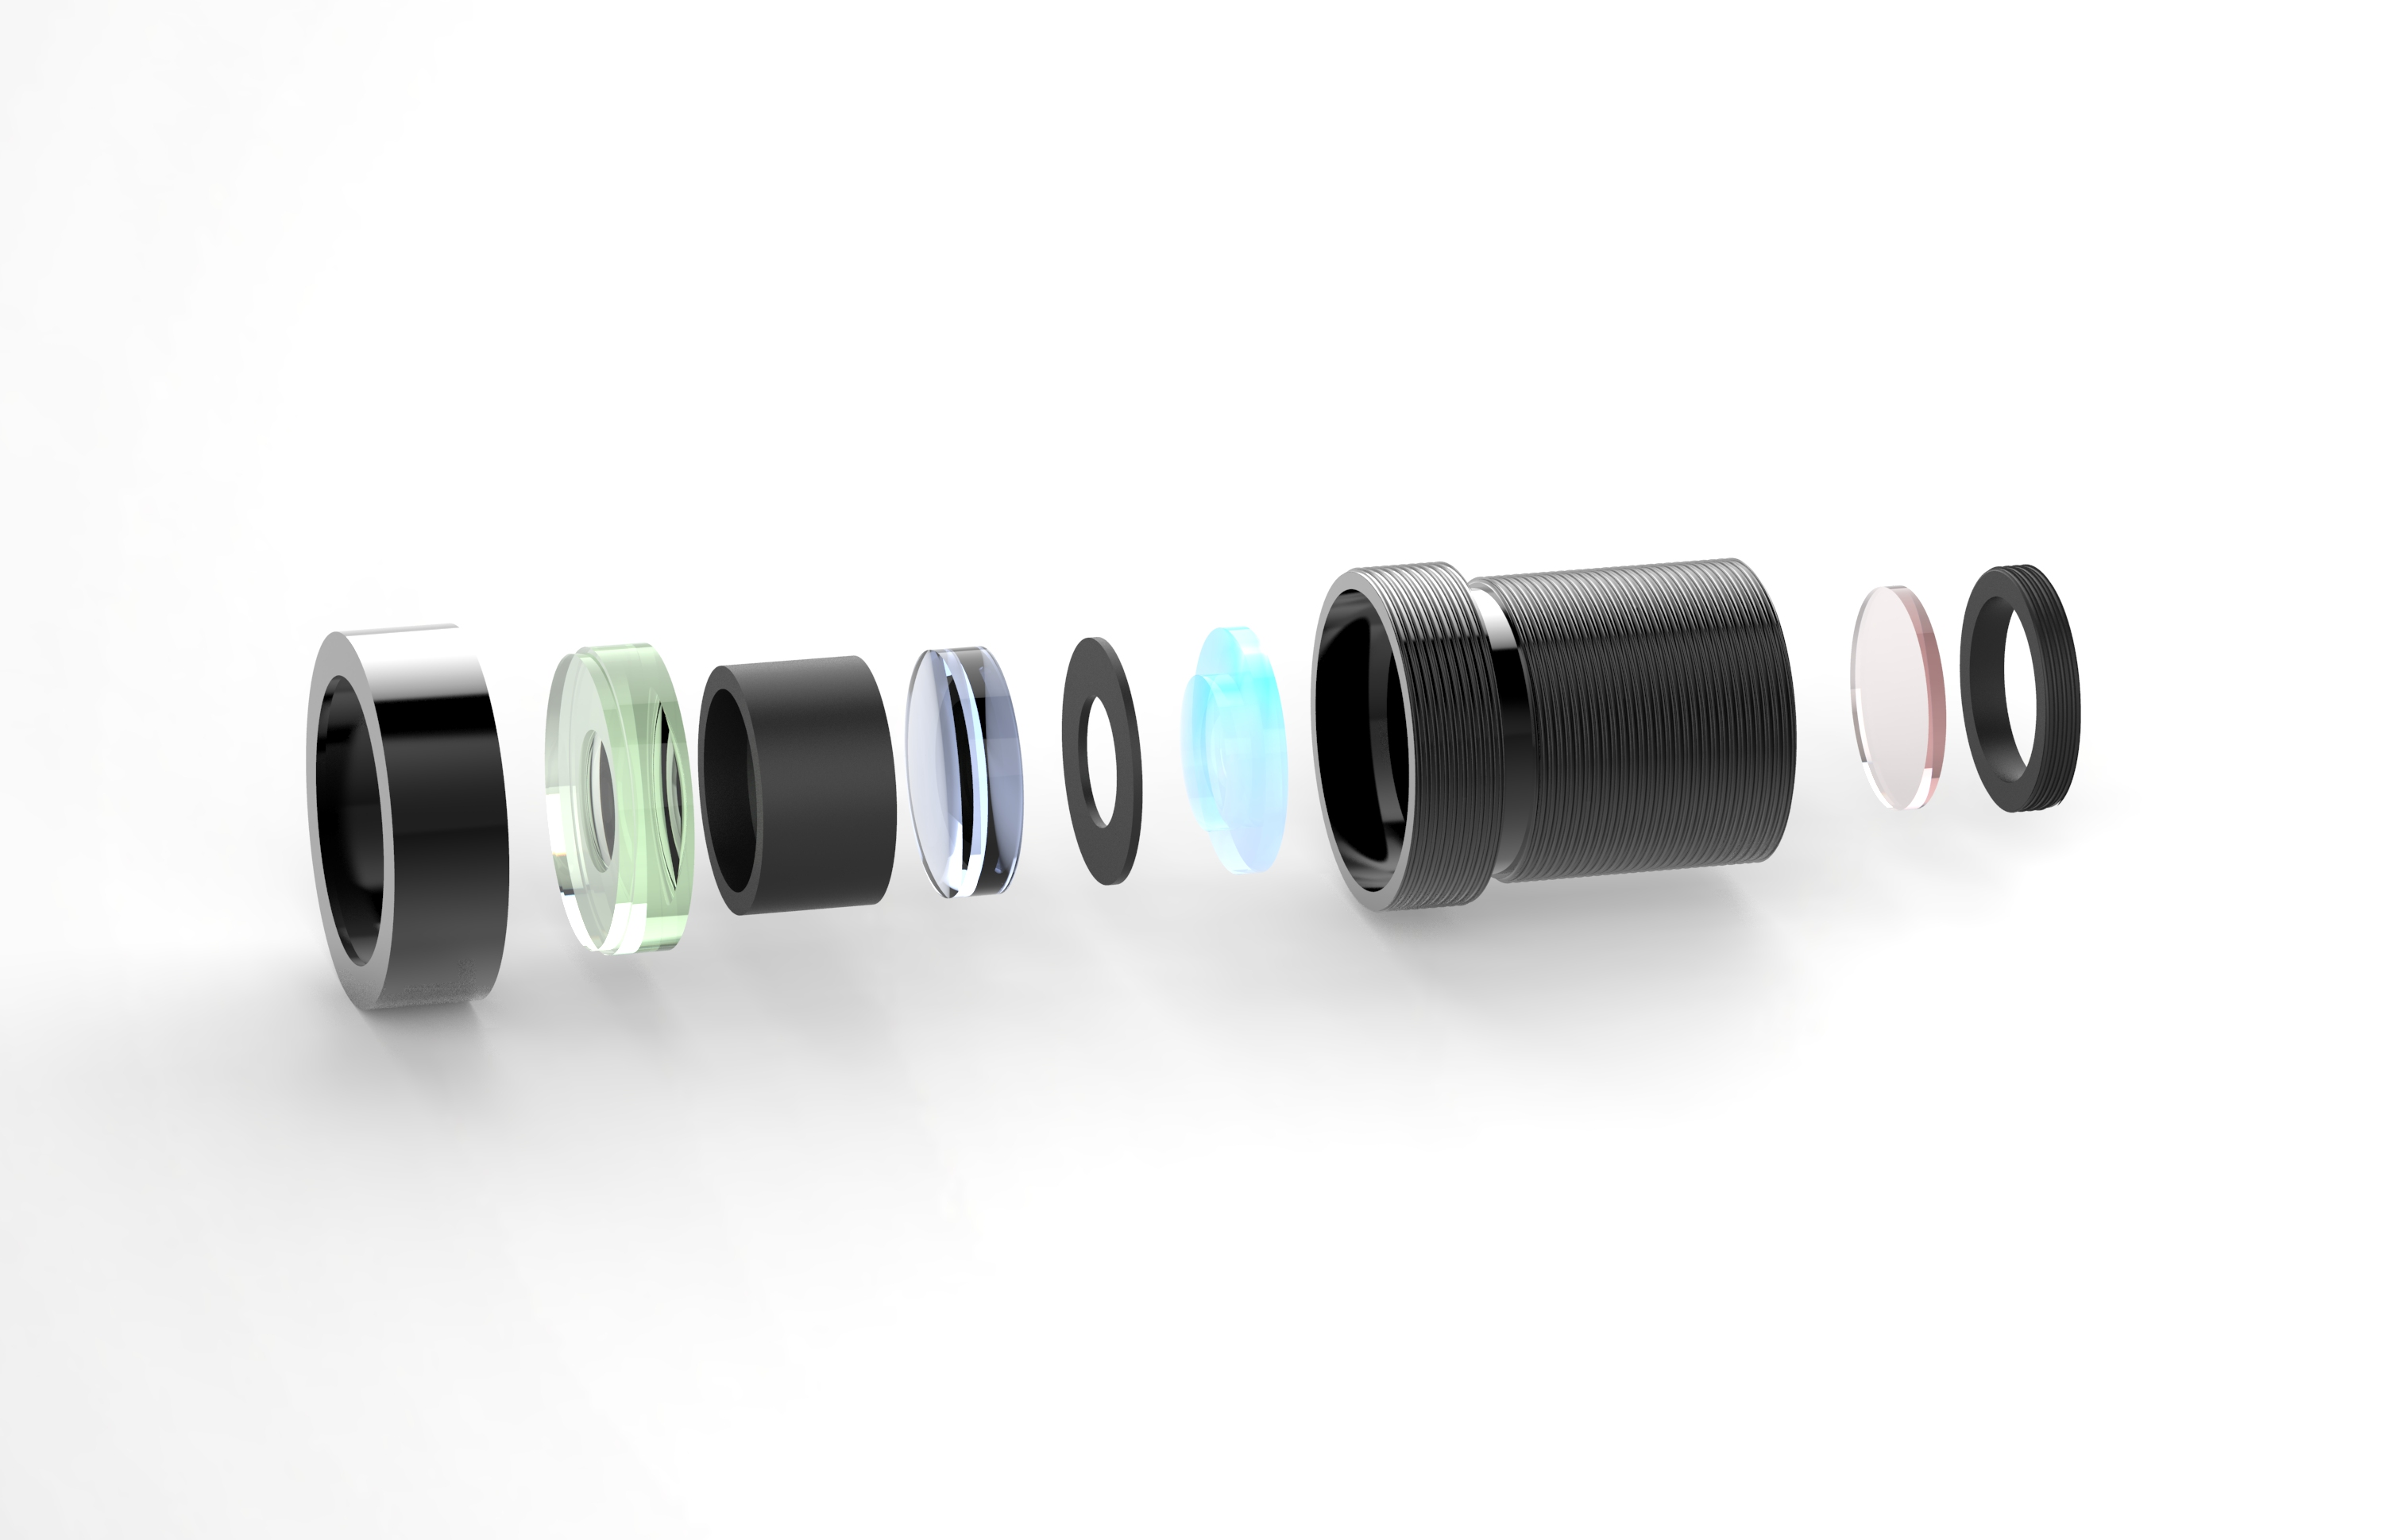 small objective lenses